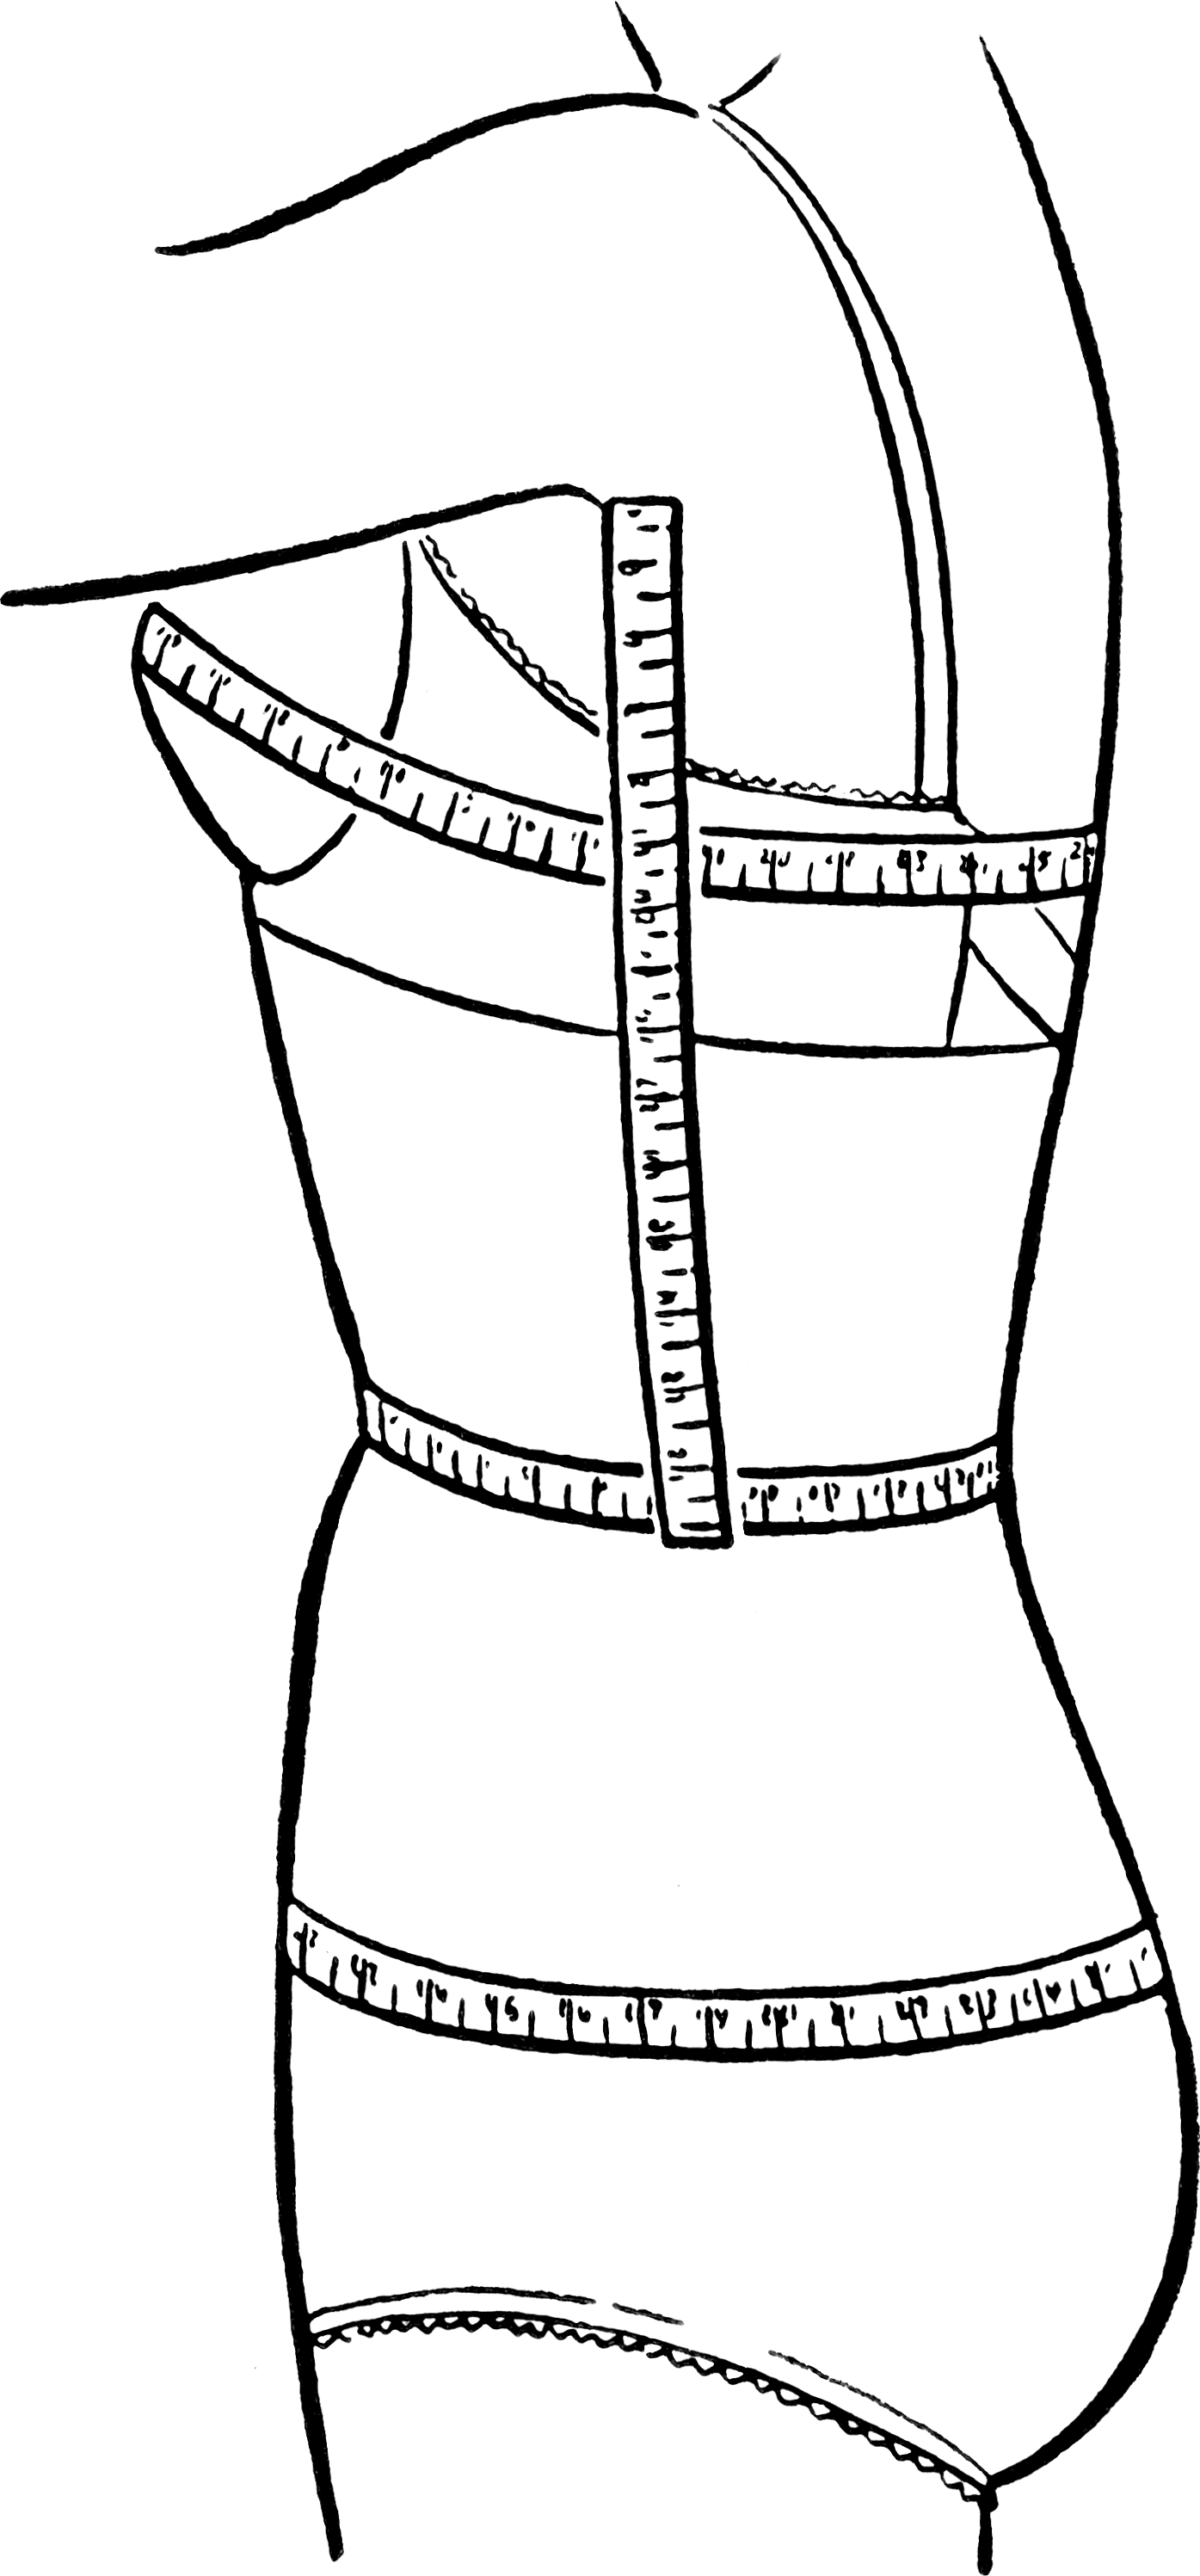 895035e3e Bust waist hip measurements - Wikipedia